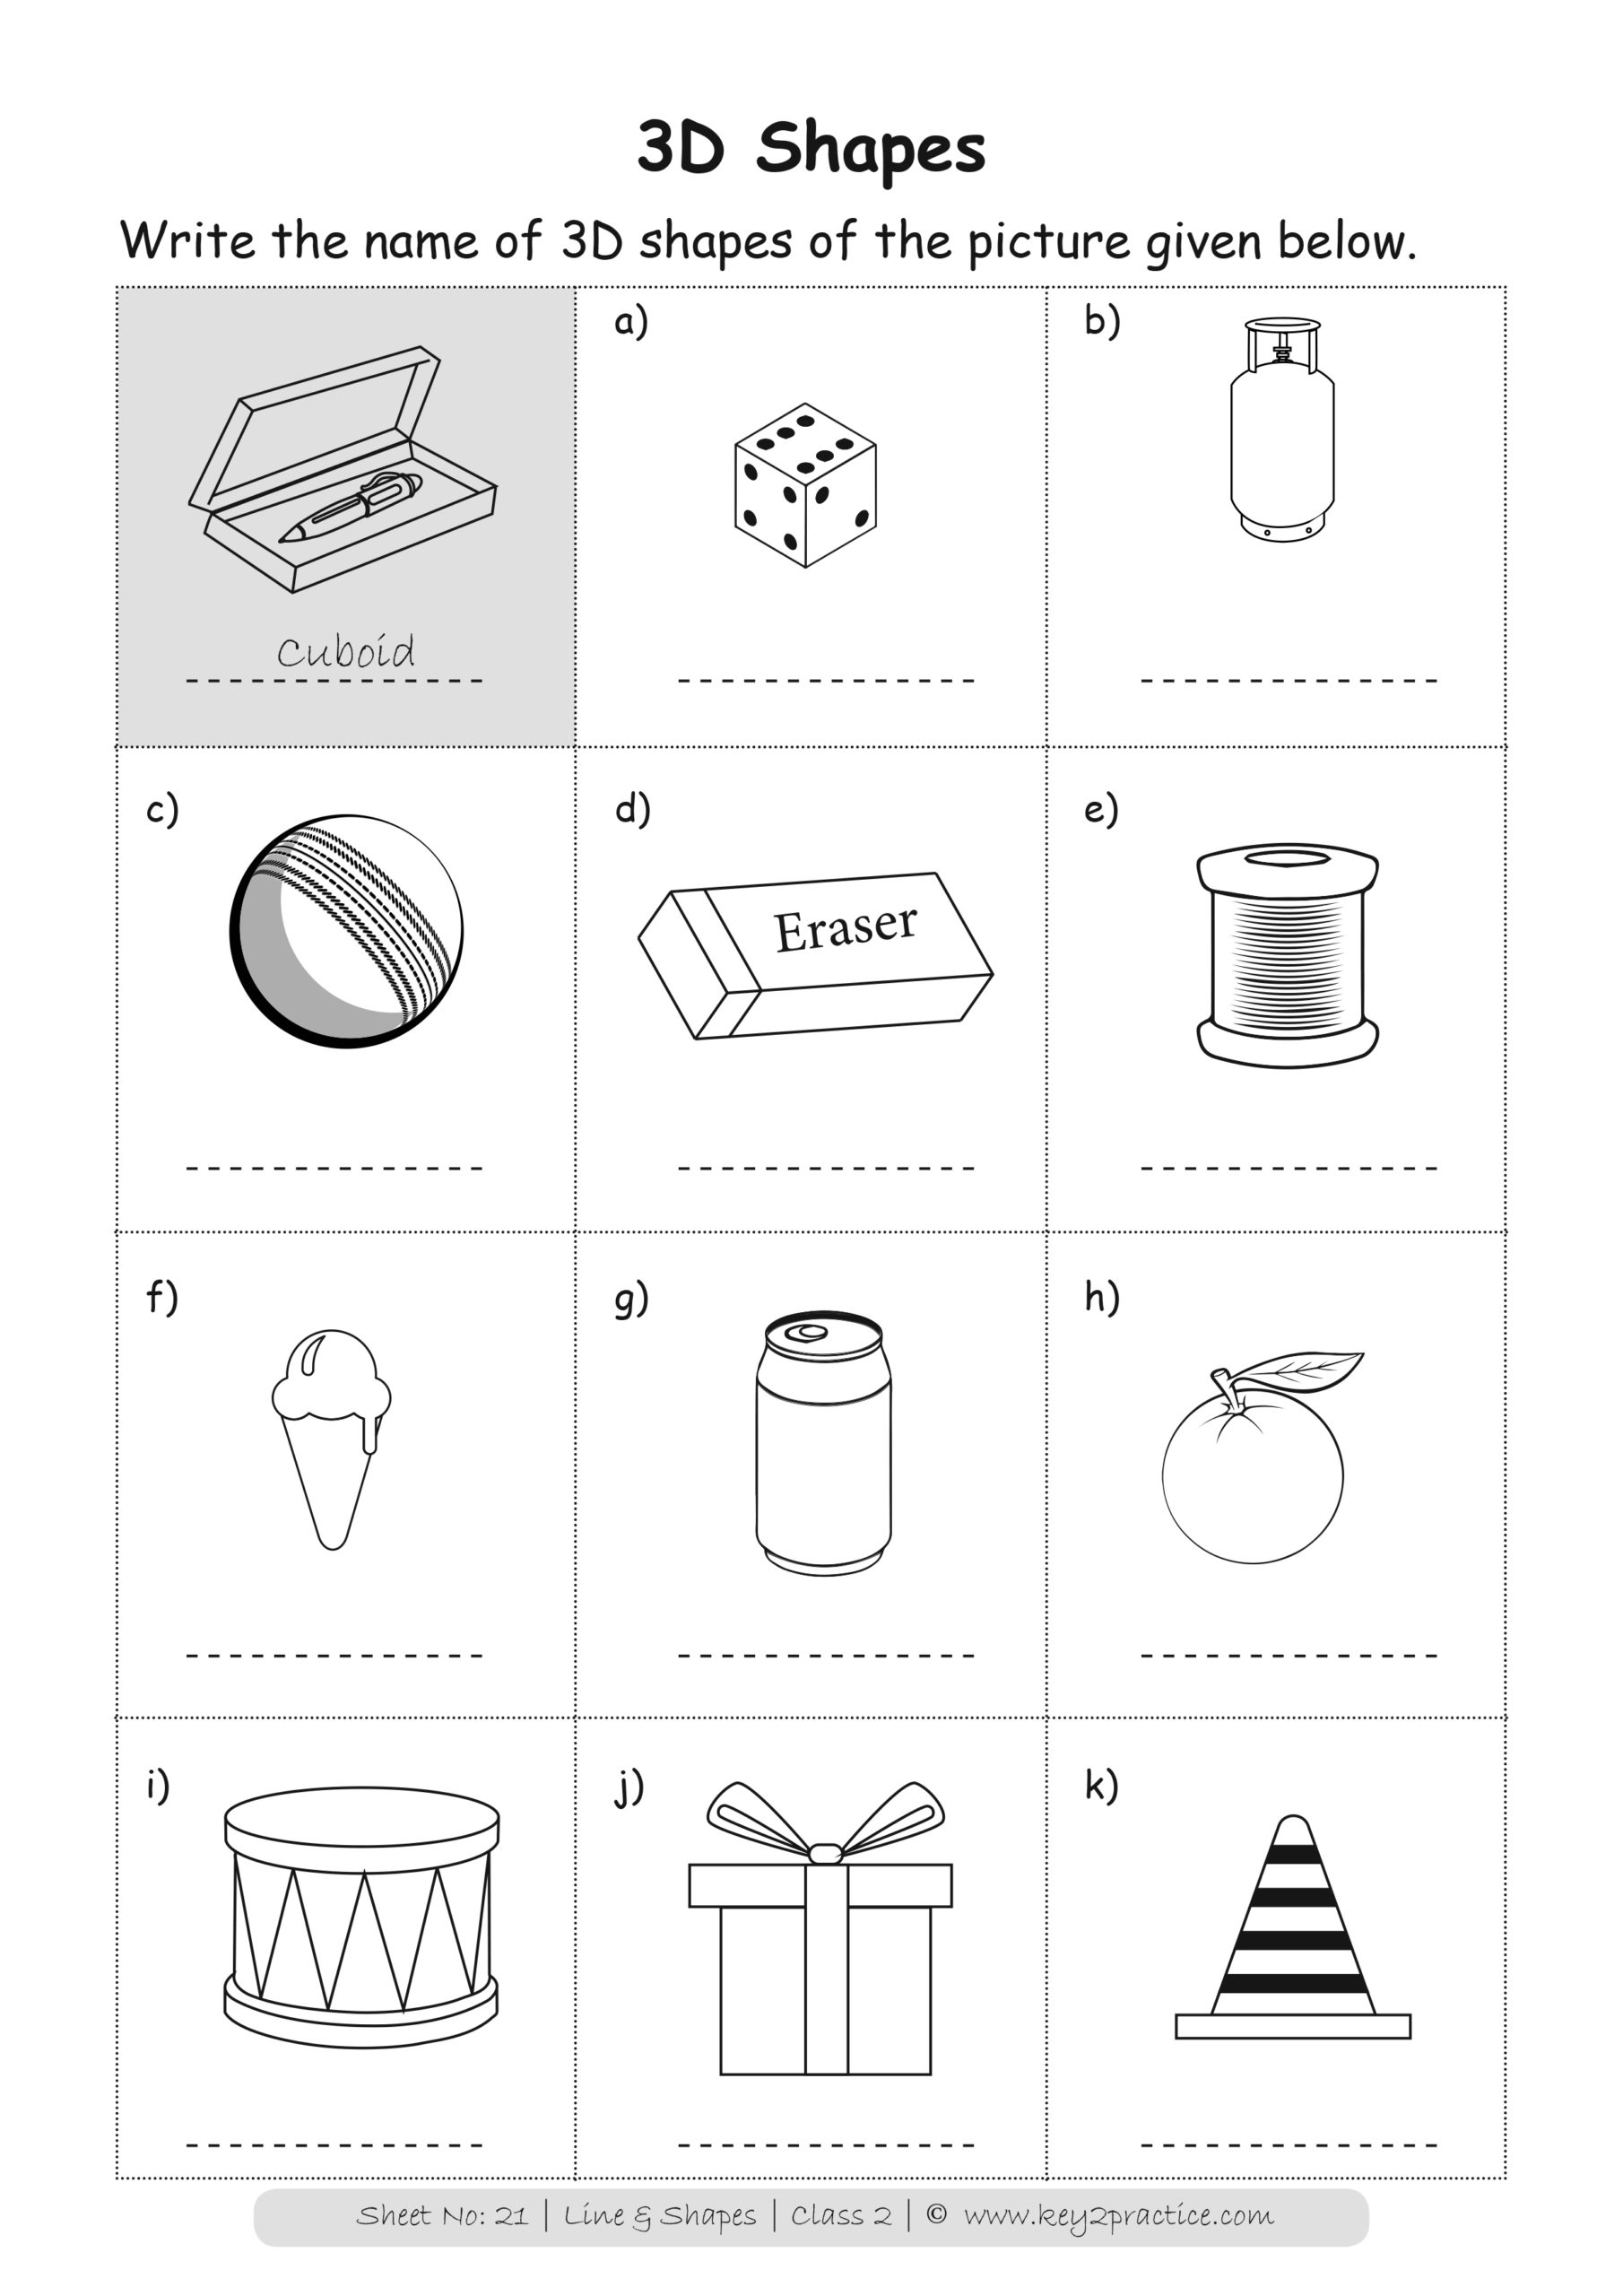 hight resolution of Maths Worksheets Grade 2 I Lines \u0026 Shapes - key2practice Workbooks